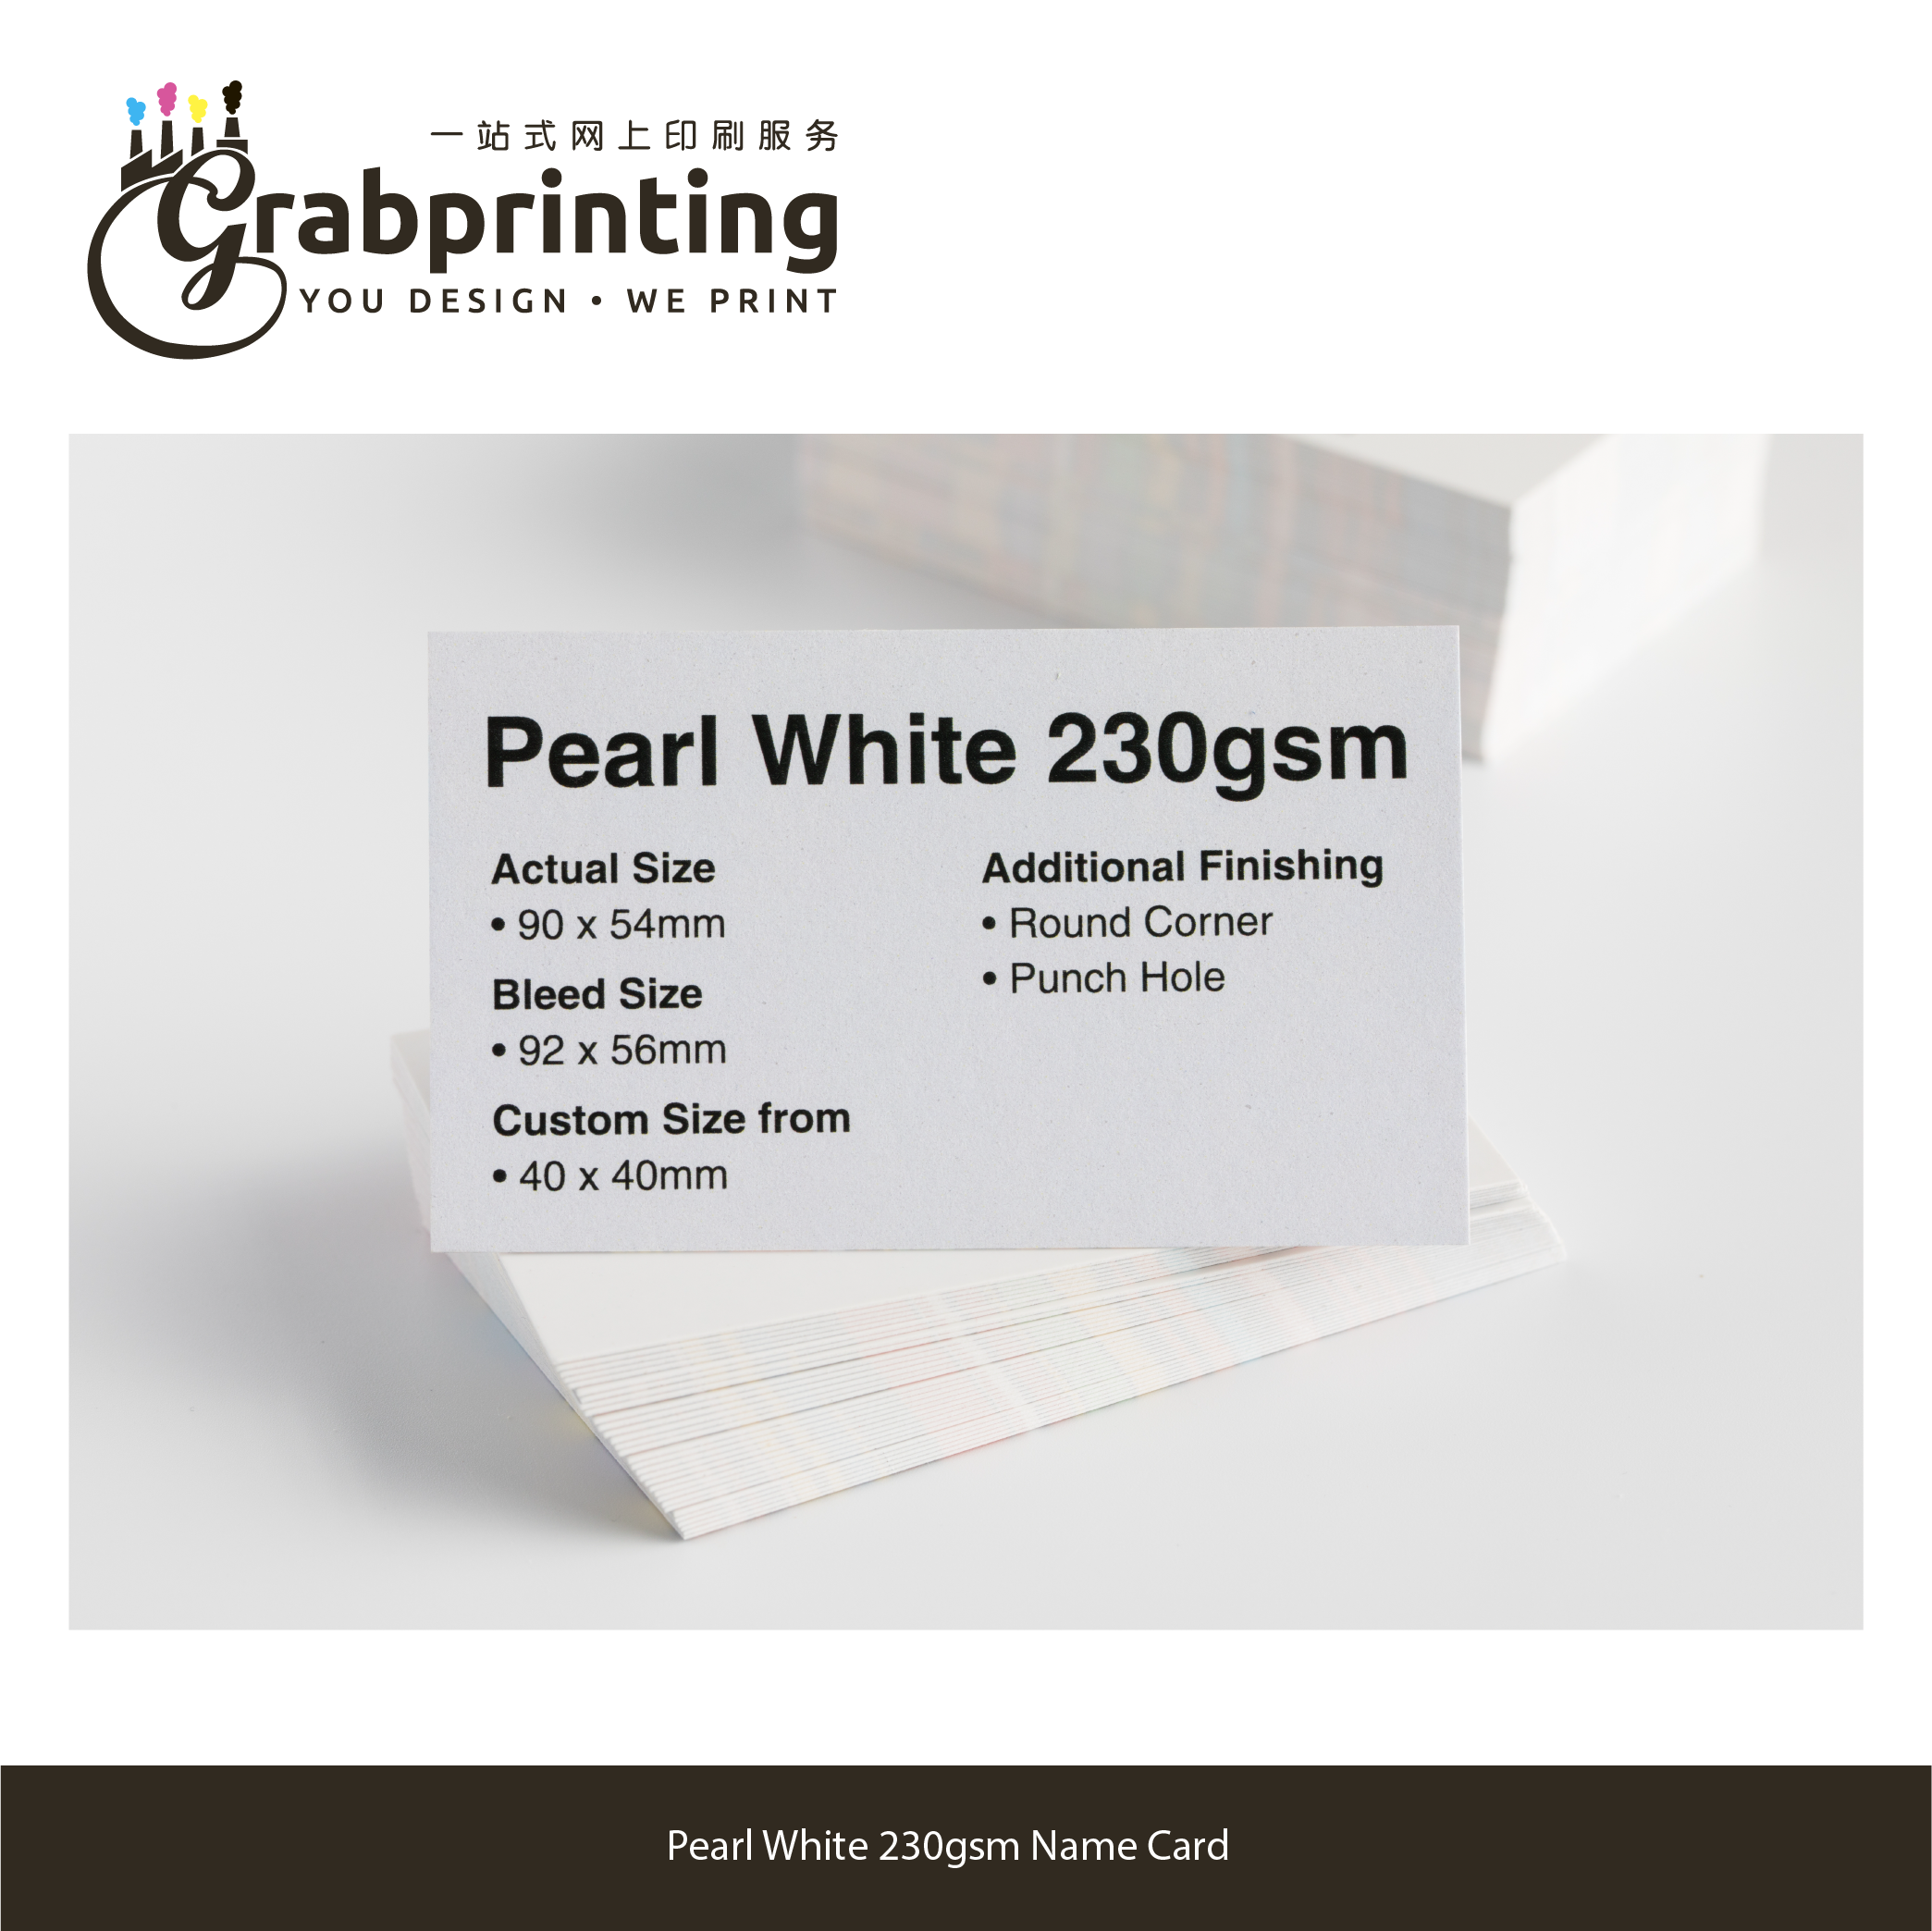 Name Card Sample Kit grabprinting 38 Pearl White 230gsm Name Card 501px 501px